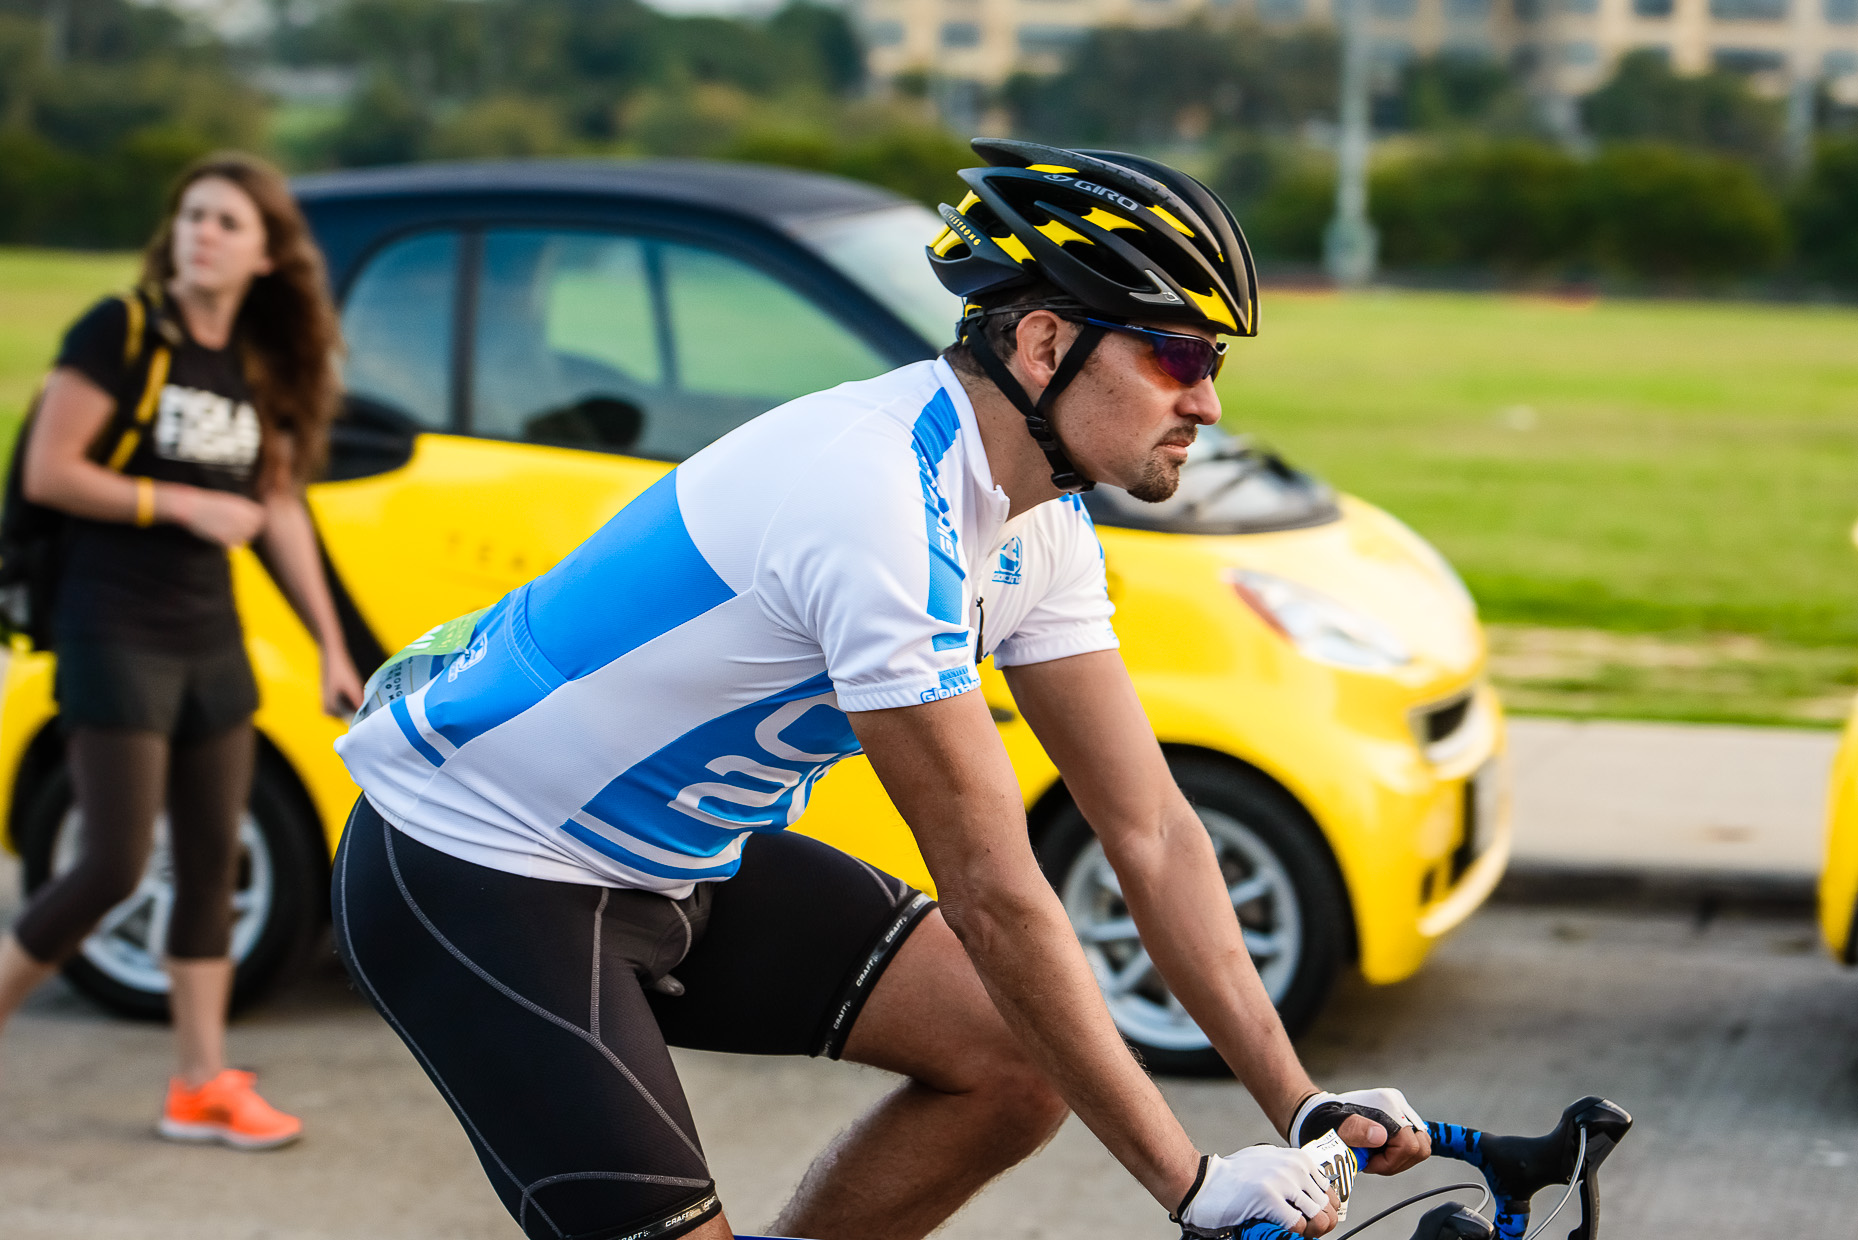 Livestrong-Austin-Commercial-Photographer-car2go-bicyclists-texas.jpg